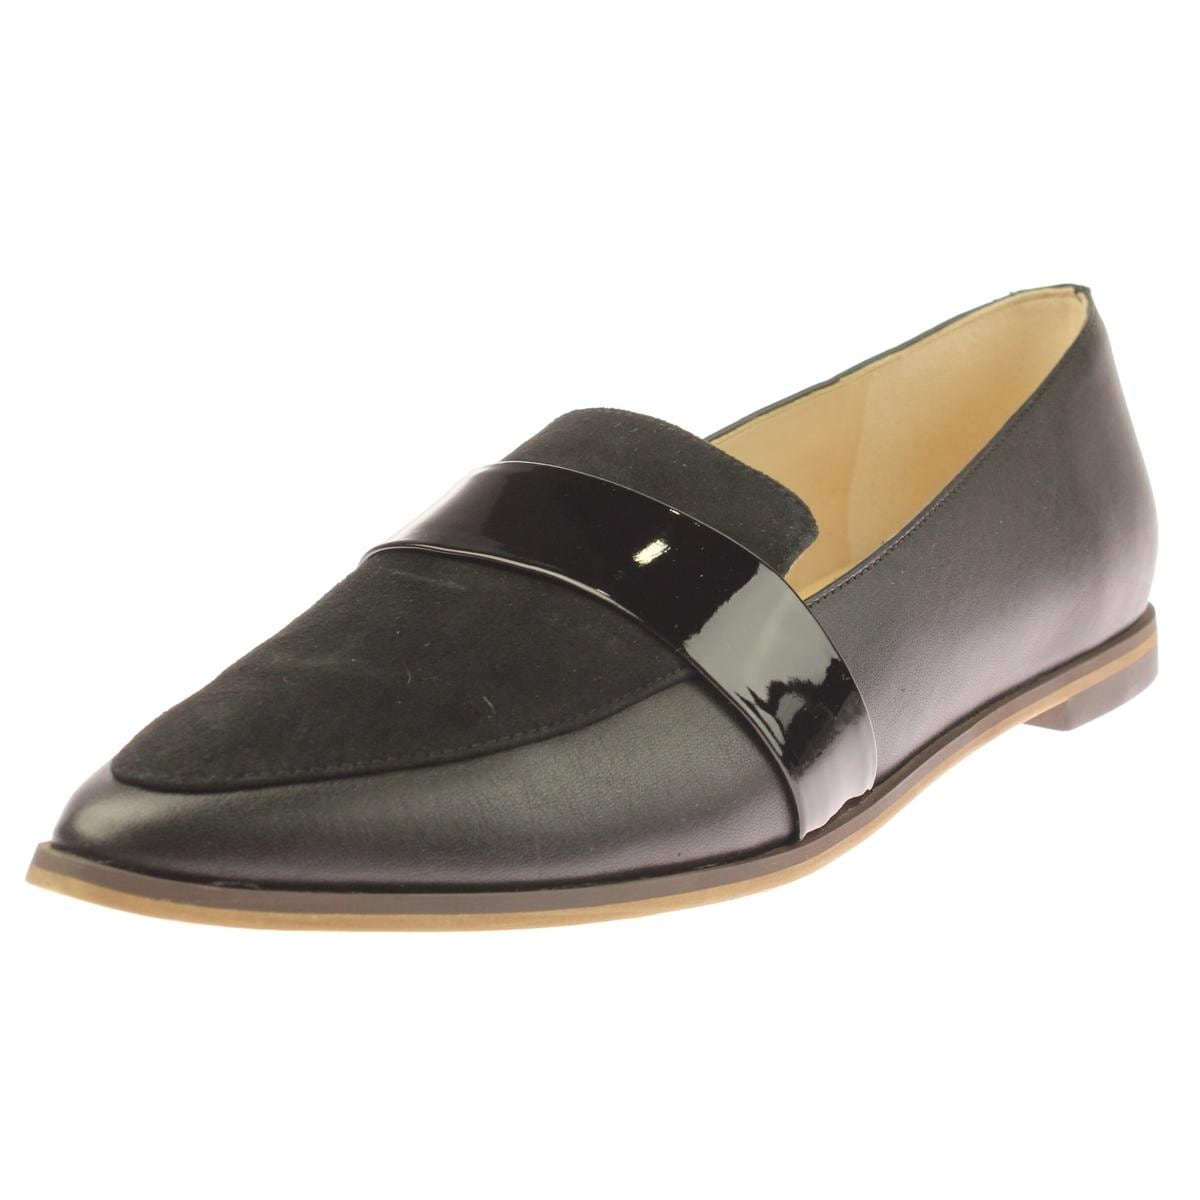 29a614671bc Shop Dr. Scholl s Womens Ashah Loafers Dress - Free Shipping On Orders Over   45 - Overstock - 15080339